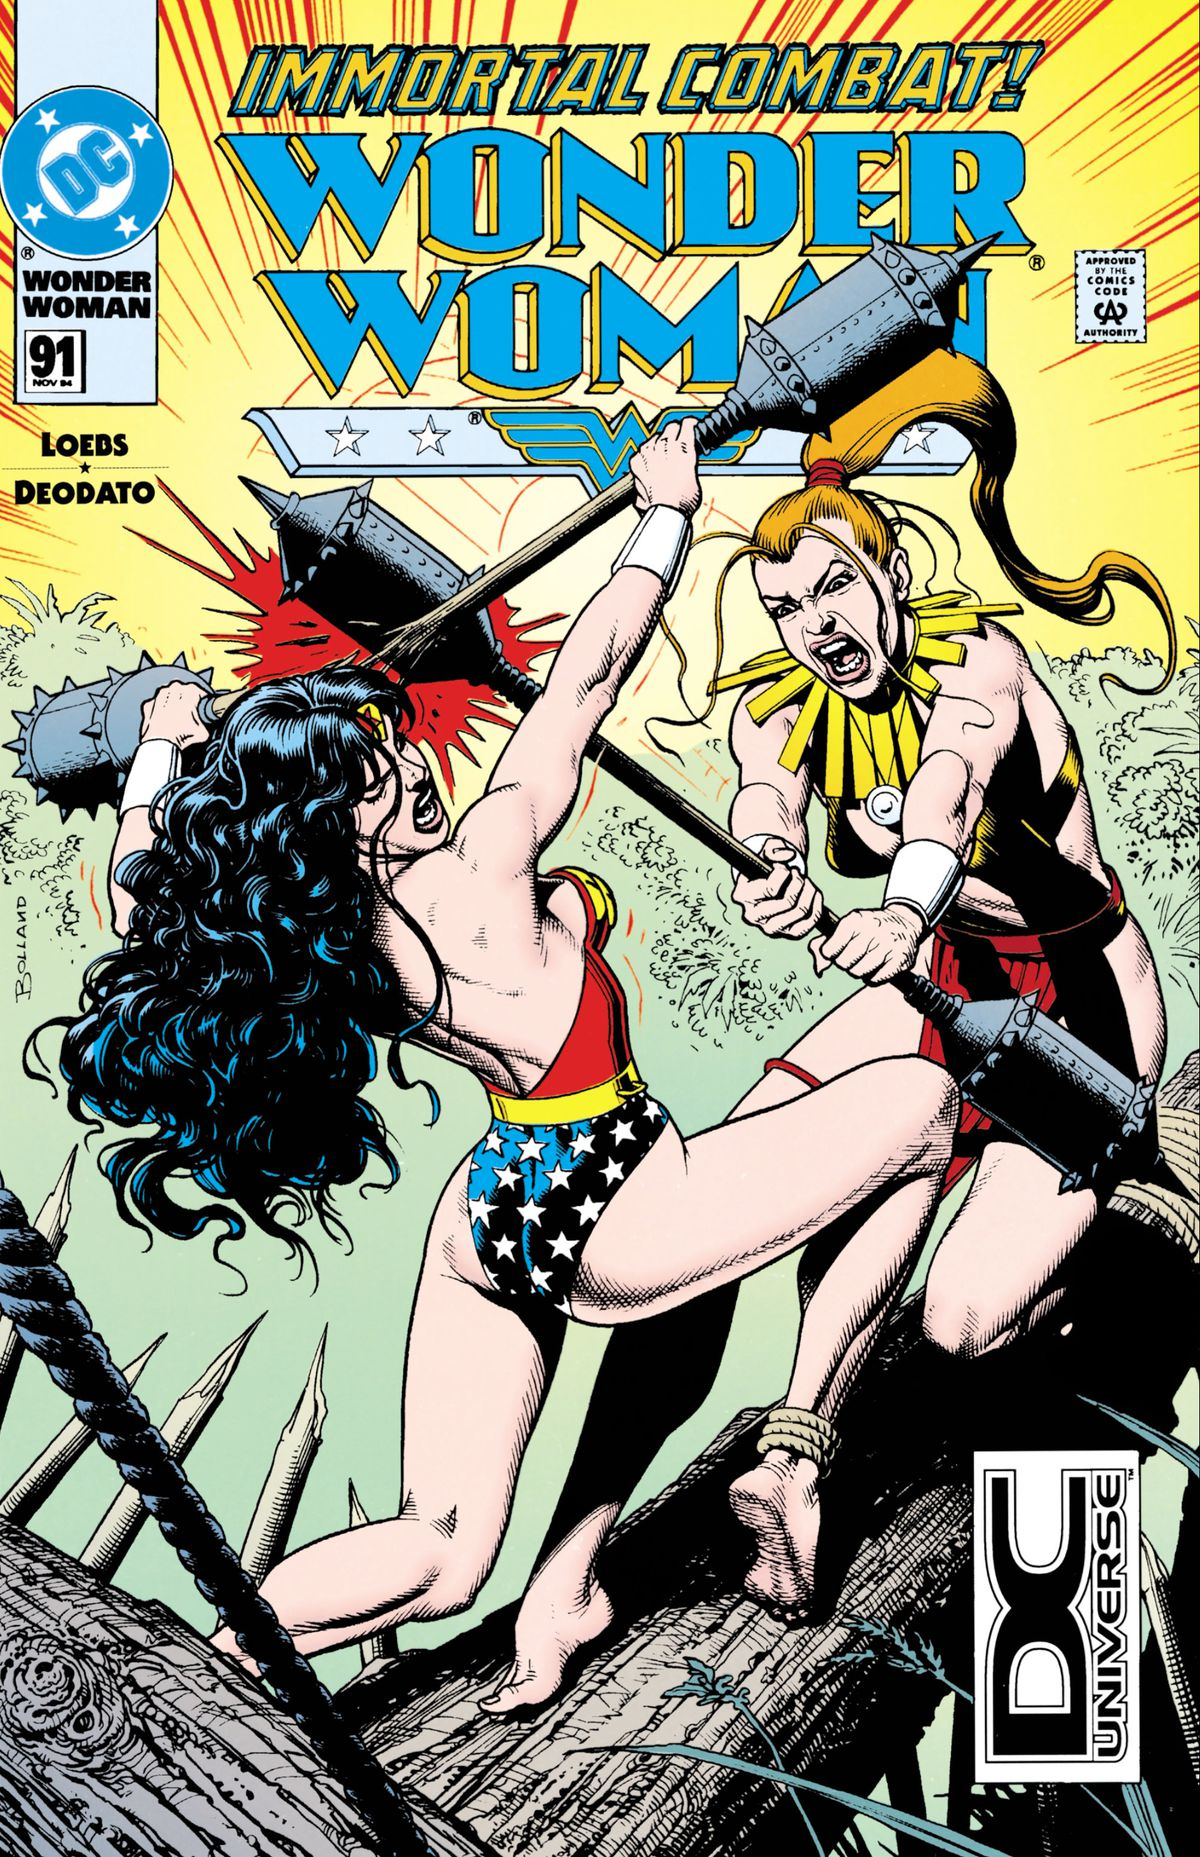 Wonder Woman and Artemis battle in gladiatorial style on the cover of Wonder Woman #91, DC Comics.